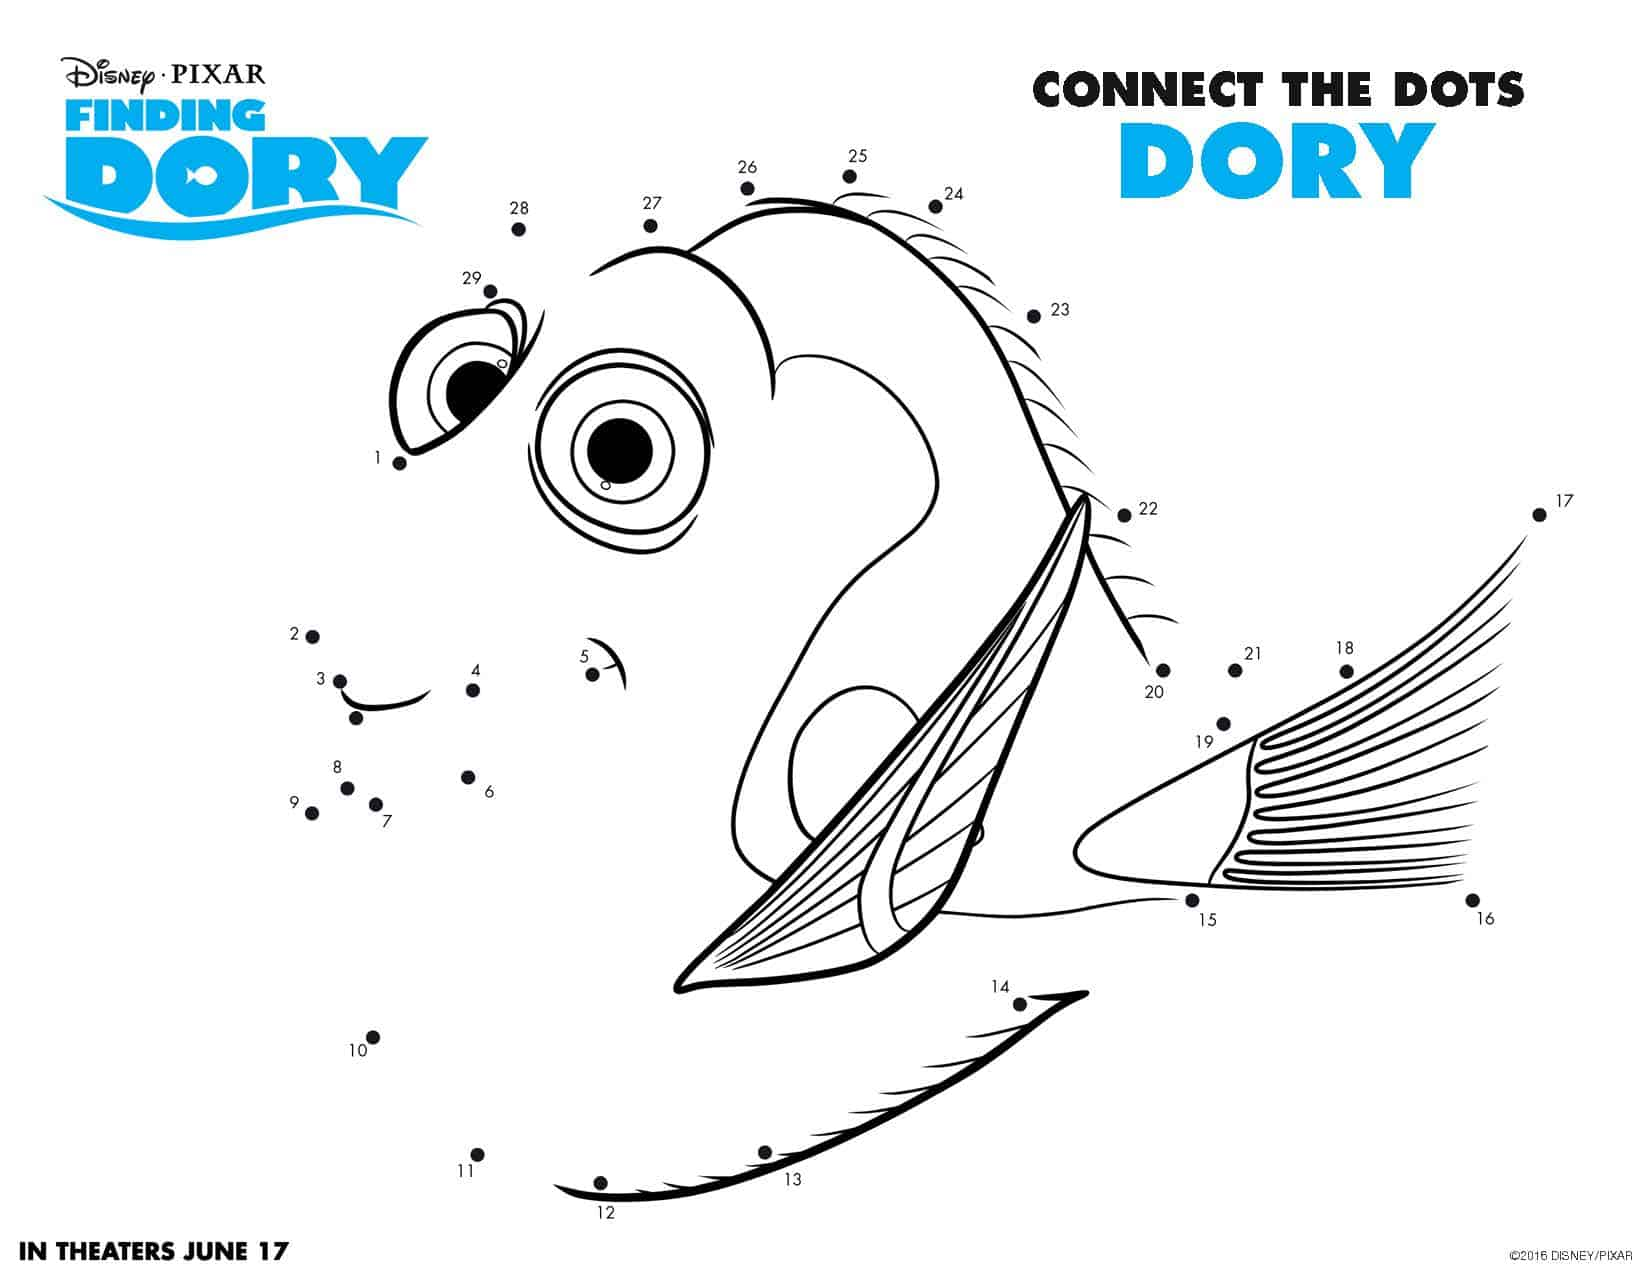 Finding dory free printable activities with ashley and company